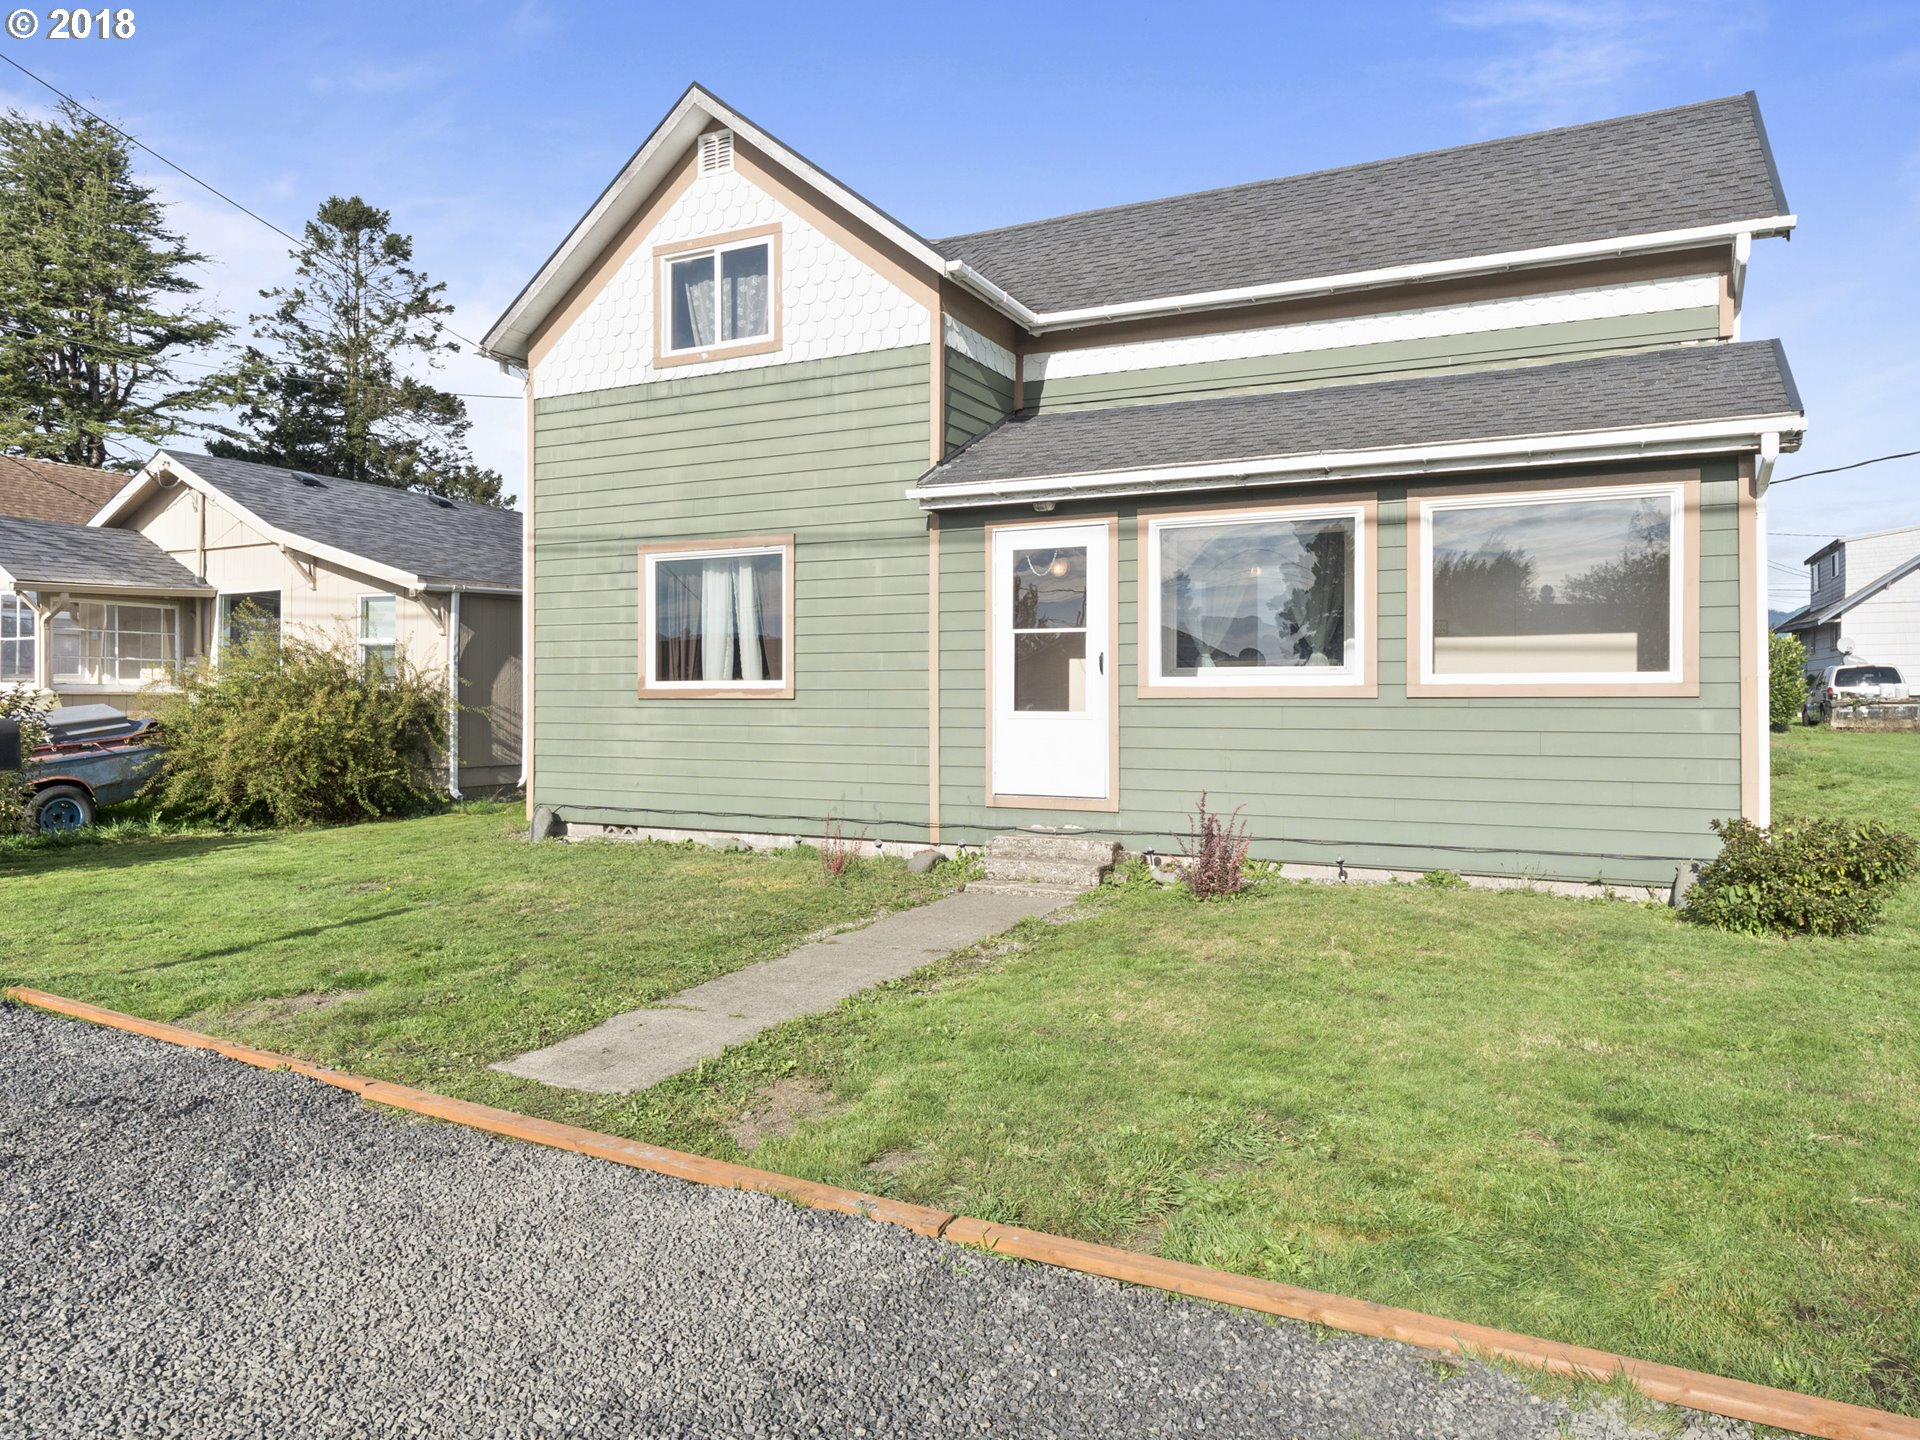 2514 7TH ST Tillamook, OR 97141 - MLS #: 18493793